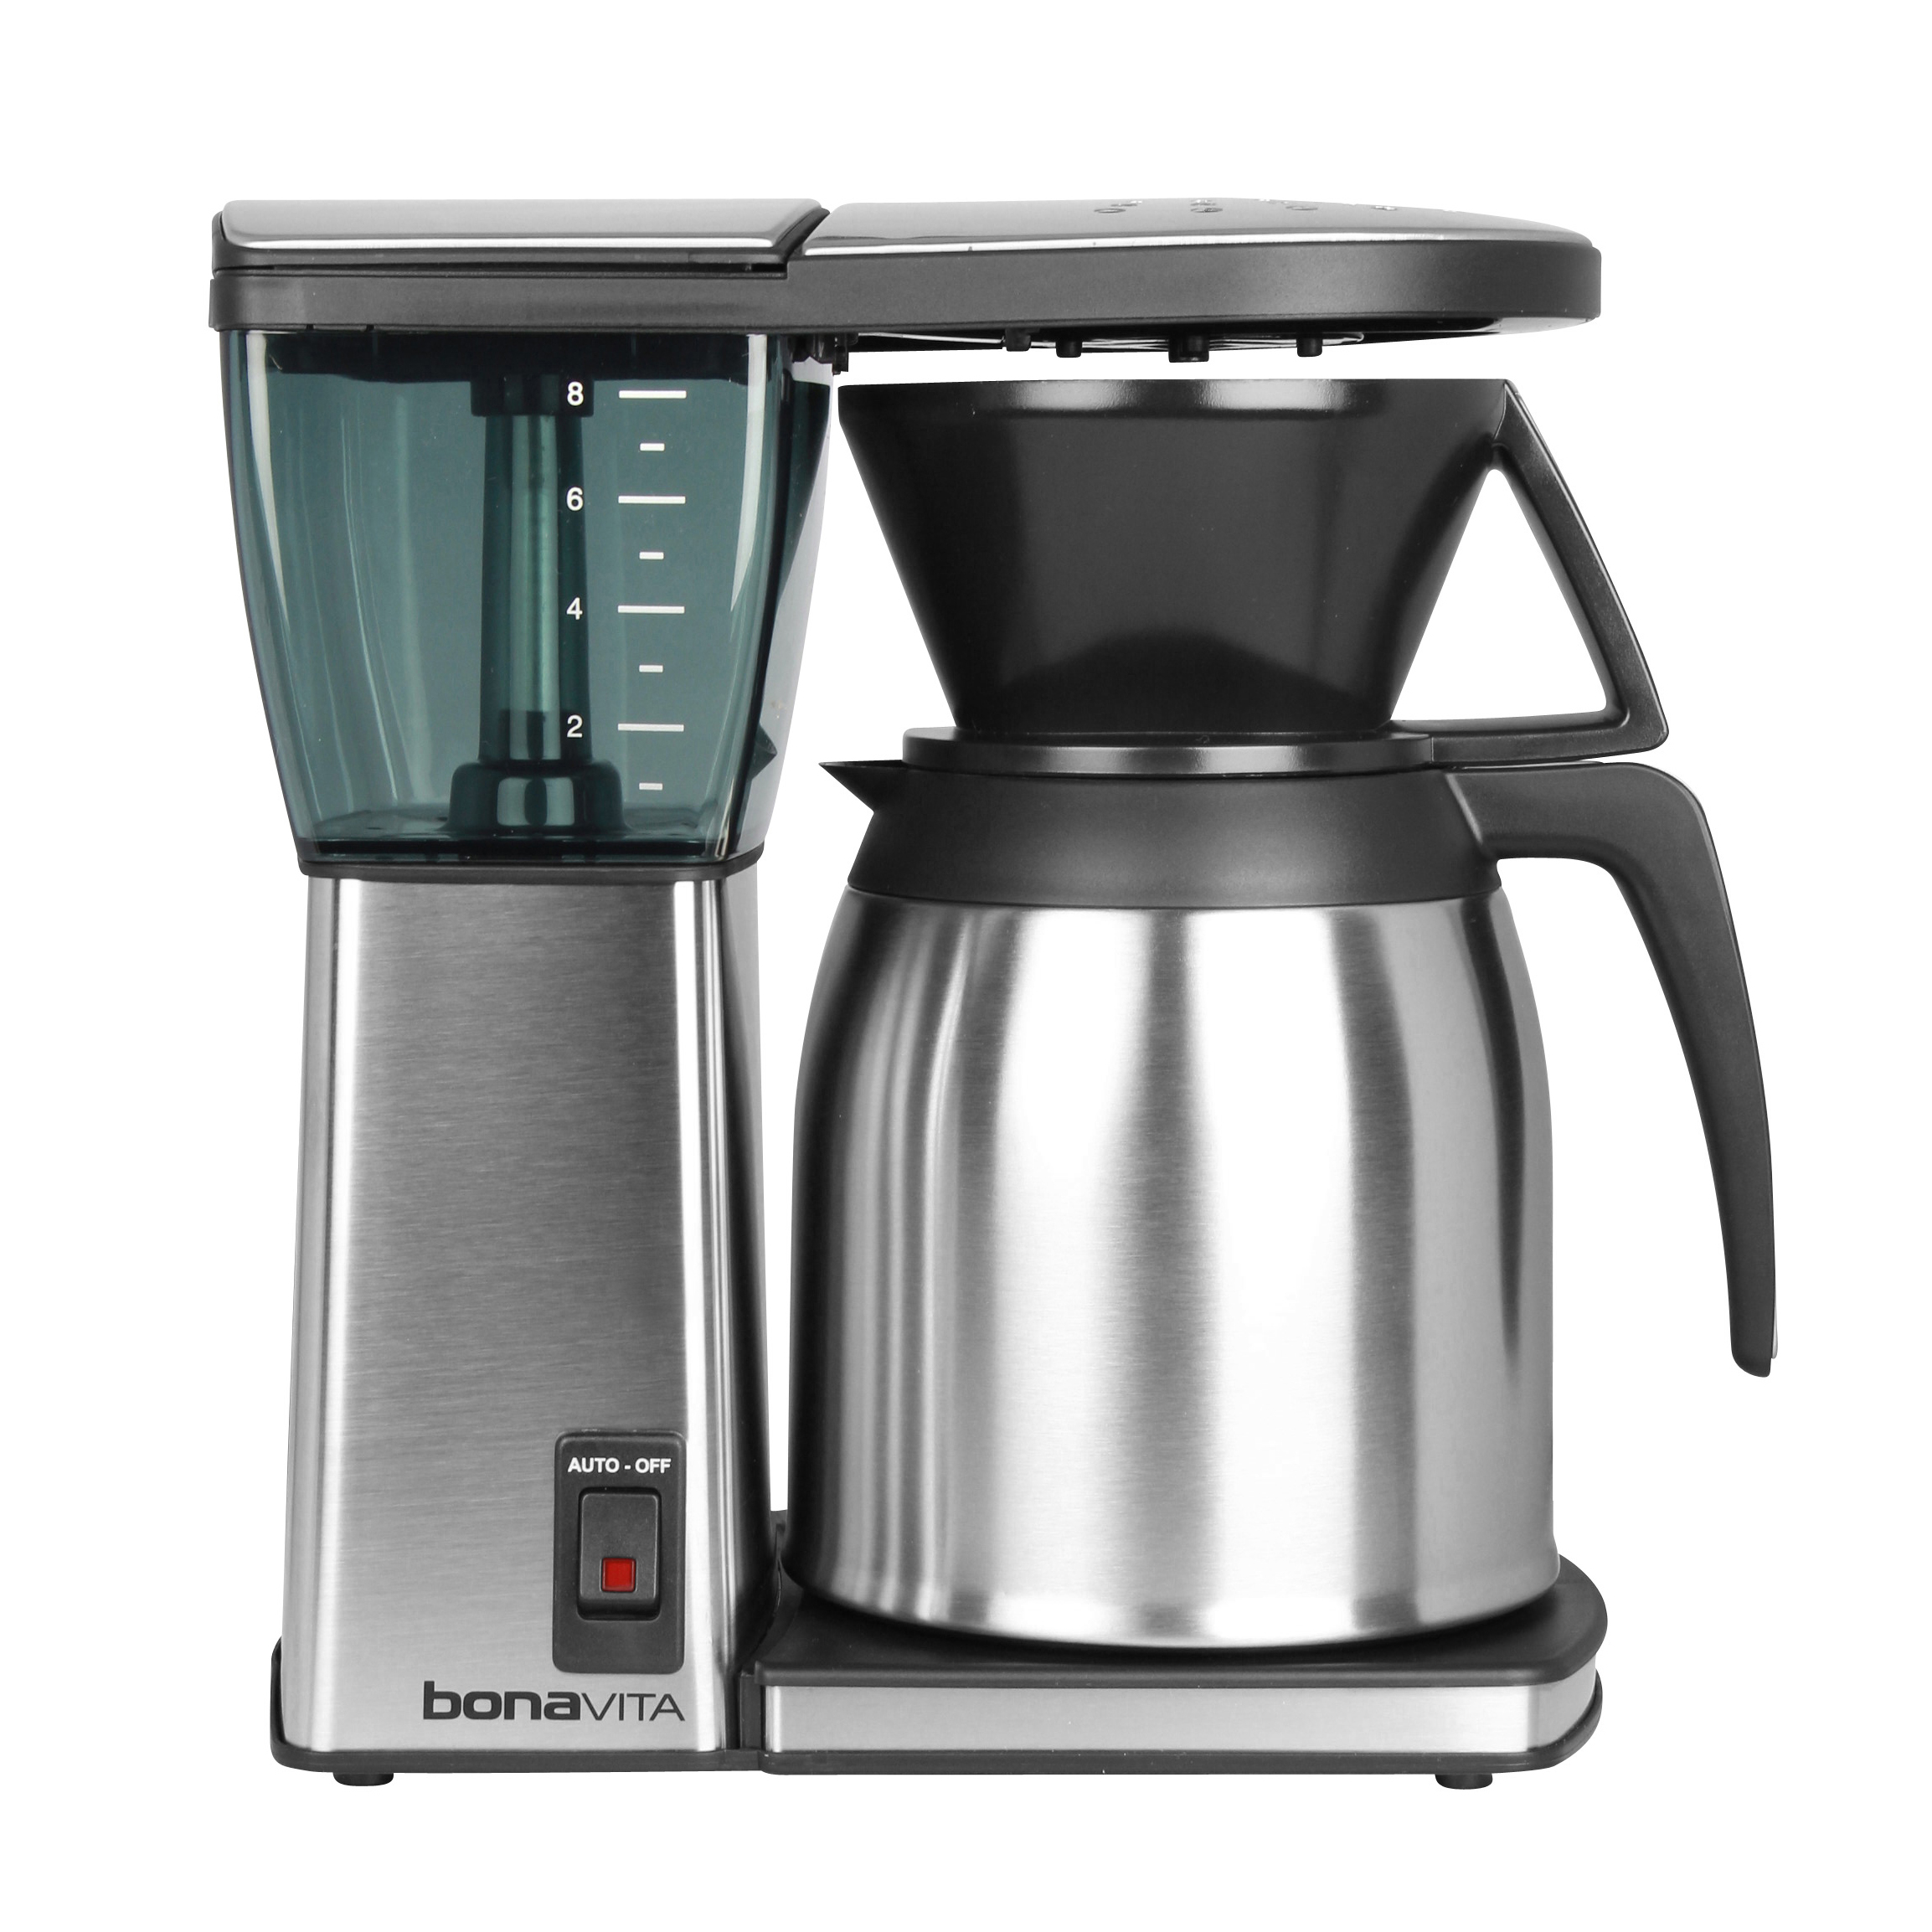 The best choice of modern coffee maker homesfeed for Best coffee maker